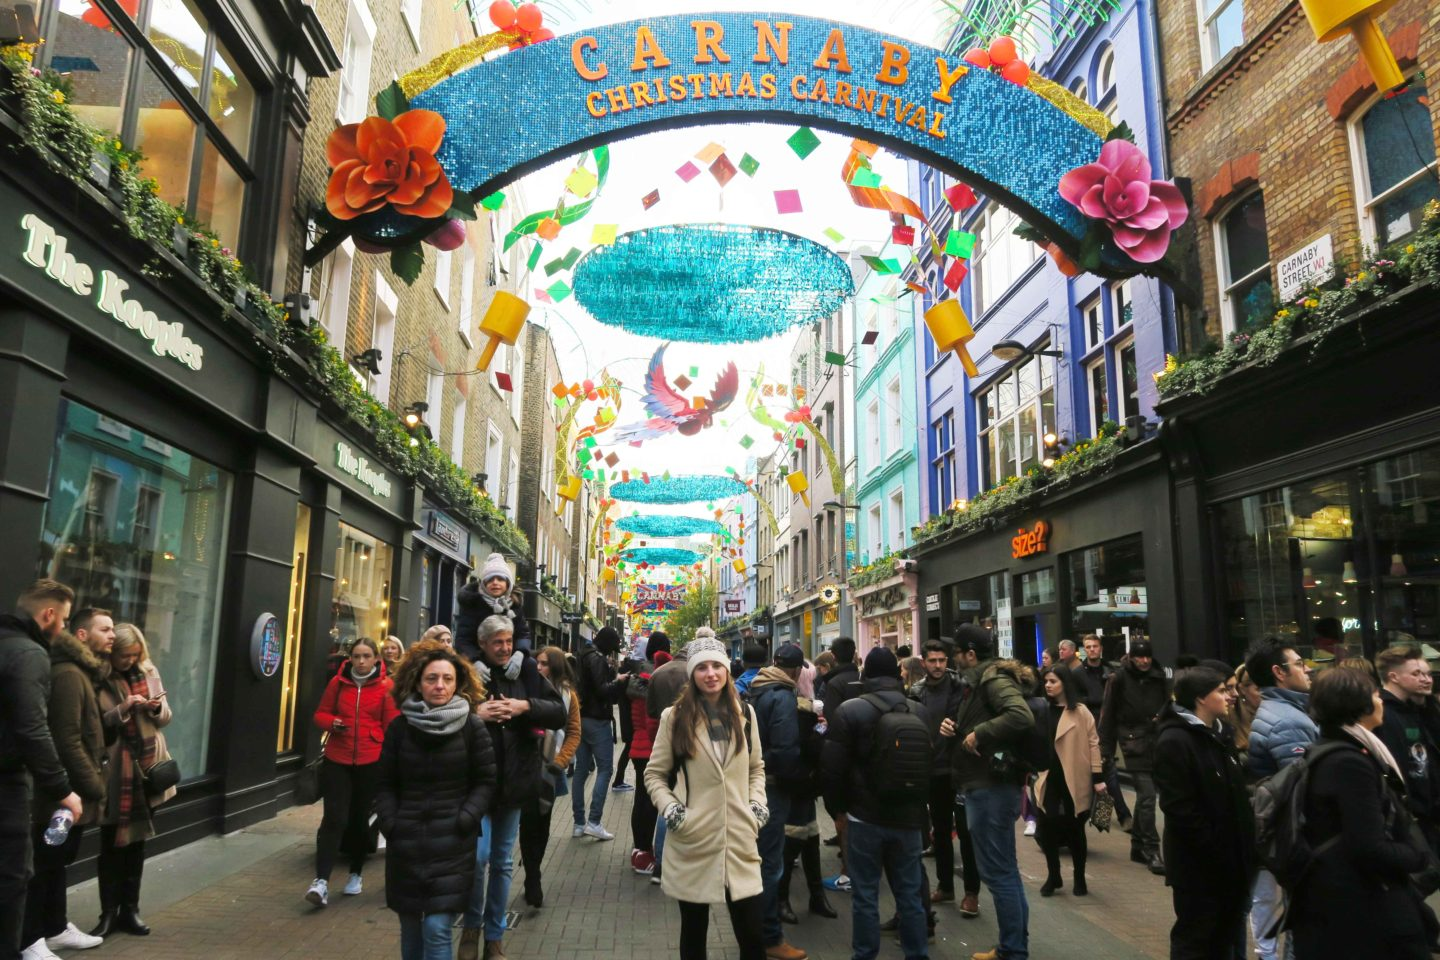 melissa carne at carnaby street christmas decorations